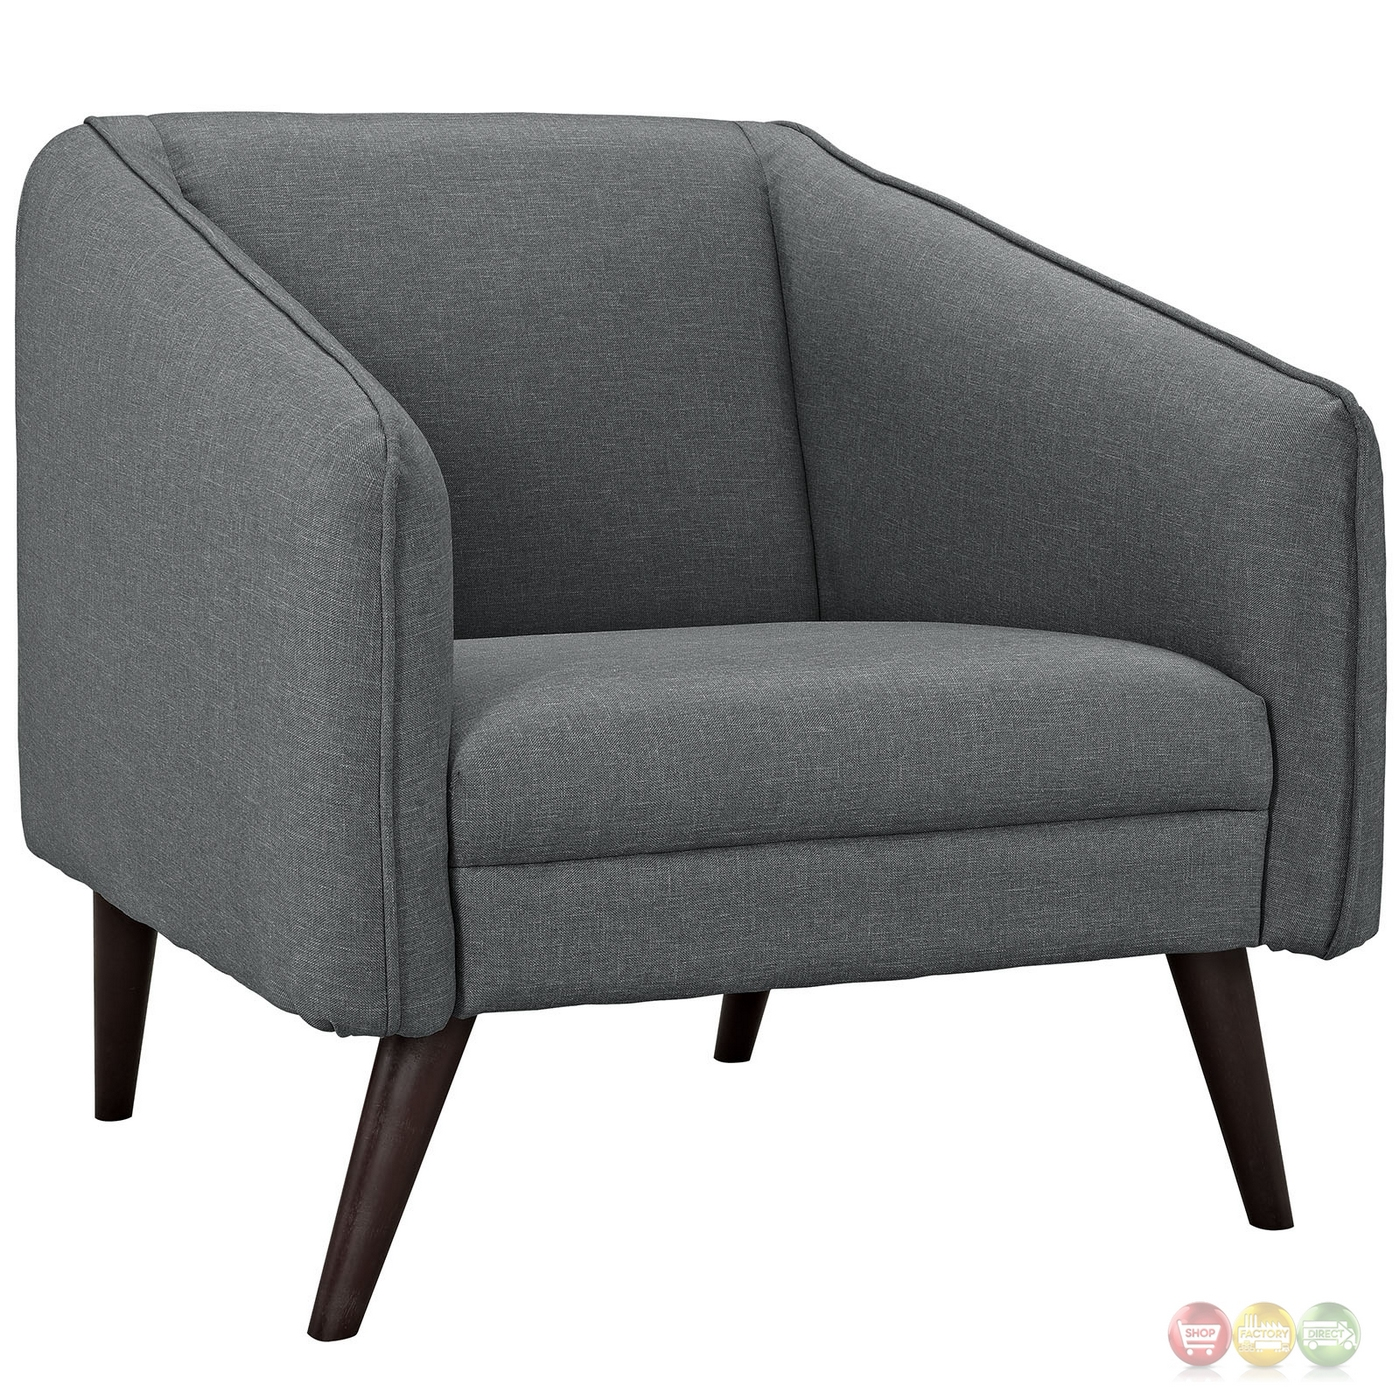 Of 2 Slide Modern Upholstered Armchairs W/ Wooden Dowel Legs Gray. Full resolution  file, nominally Width 1400 Height 1400 pixels, file with #A1852A.